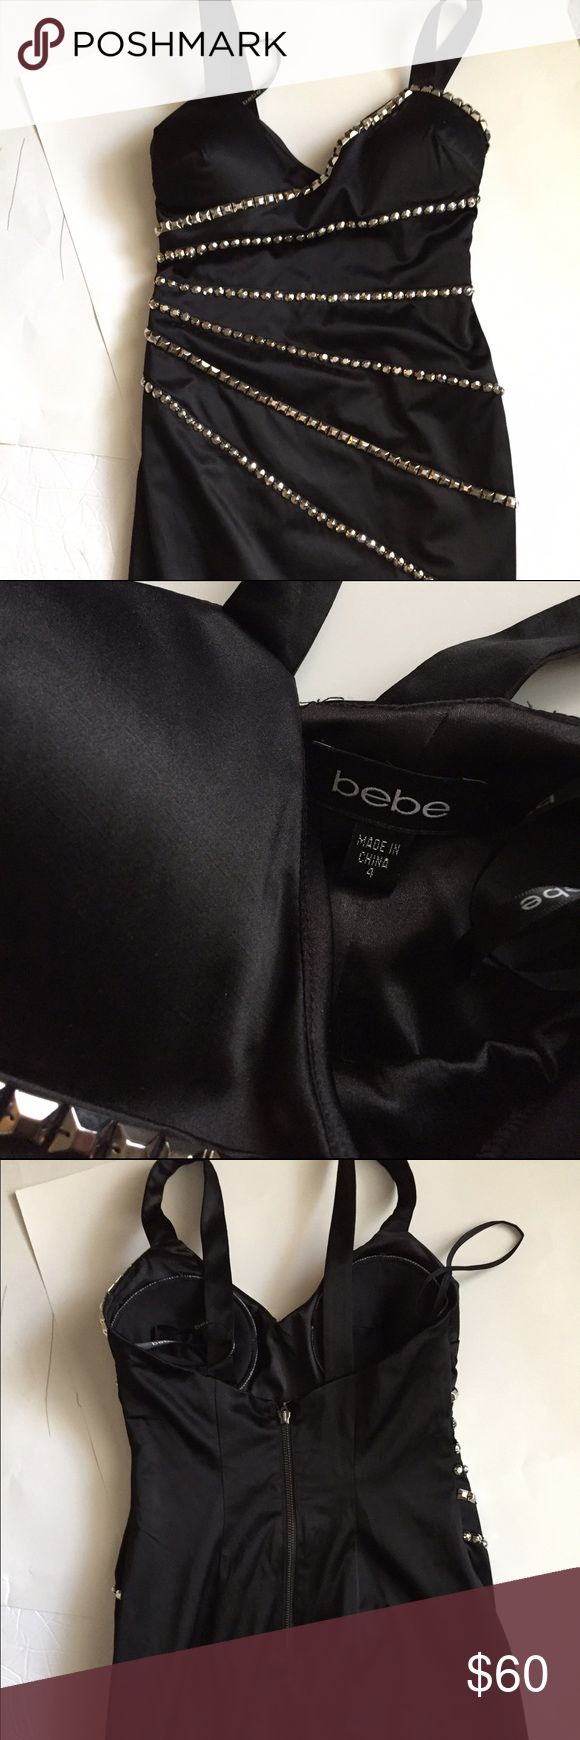 Bebe Black Dress!  Bebe Black sexy dress embellished with silver toned studs! 30 inches long! Bust padding! Back outer zipper! Great condition! Everyone needs a little black going out dress! bebe Dresses Midi